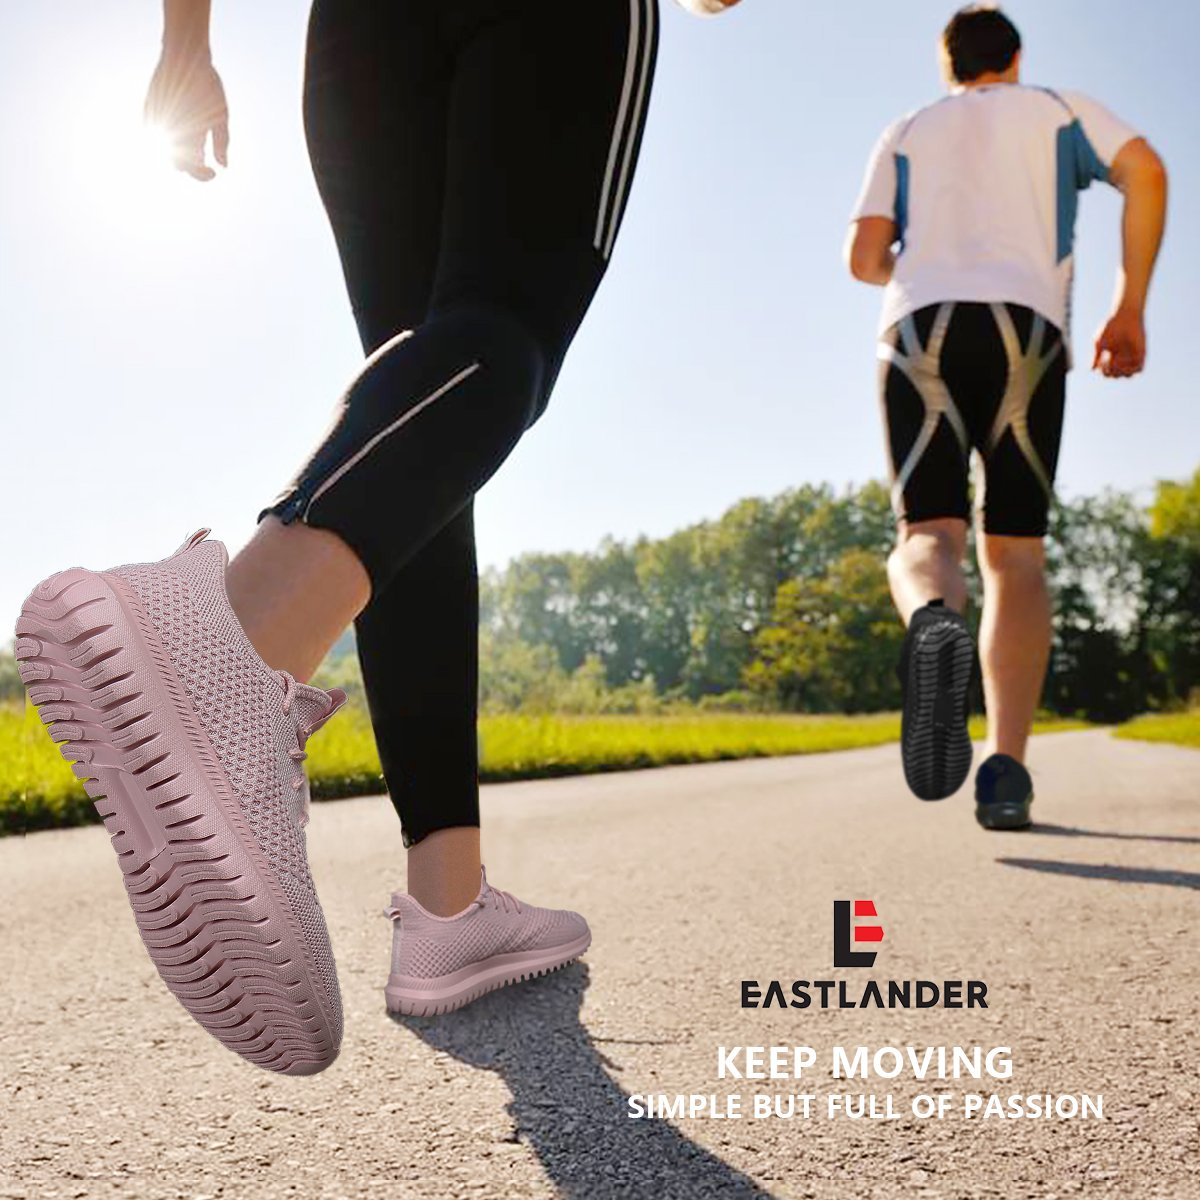 EAST LANDER Men's & Women's Sneakers Lightweight Athletic Shoes Walking Casual Sneakers Lace-up Running Sports Shoes SPT002-W1-38 by EAST LANDER (Image #7)